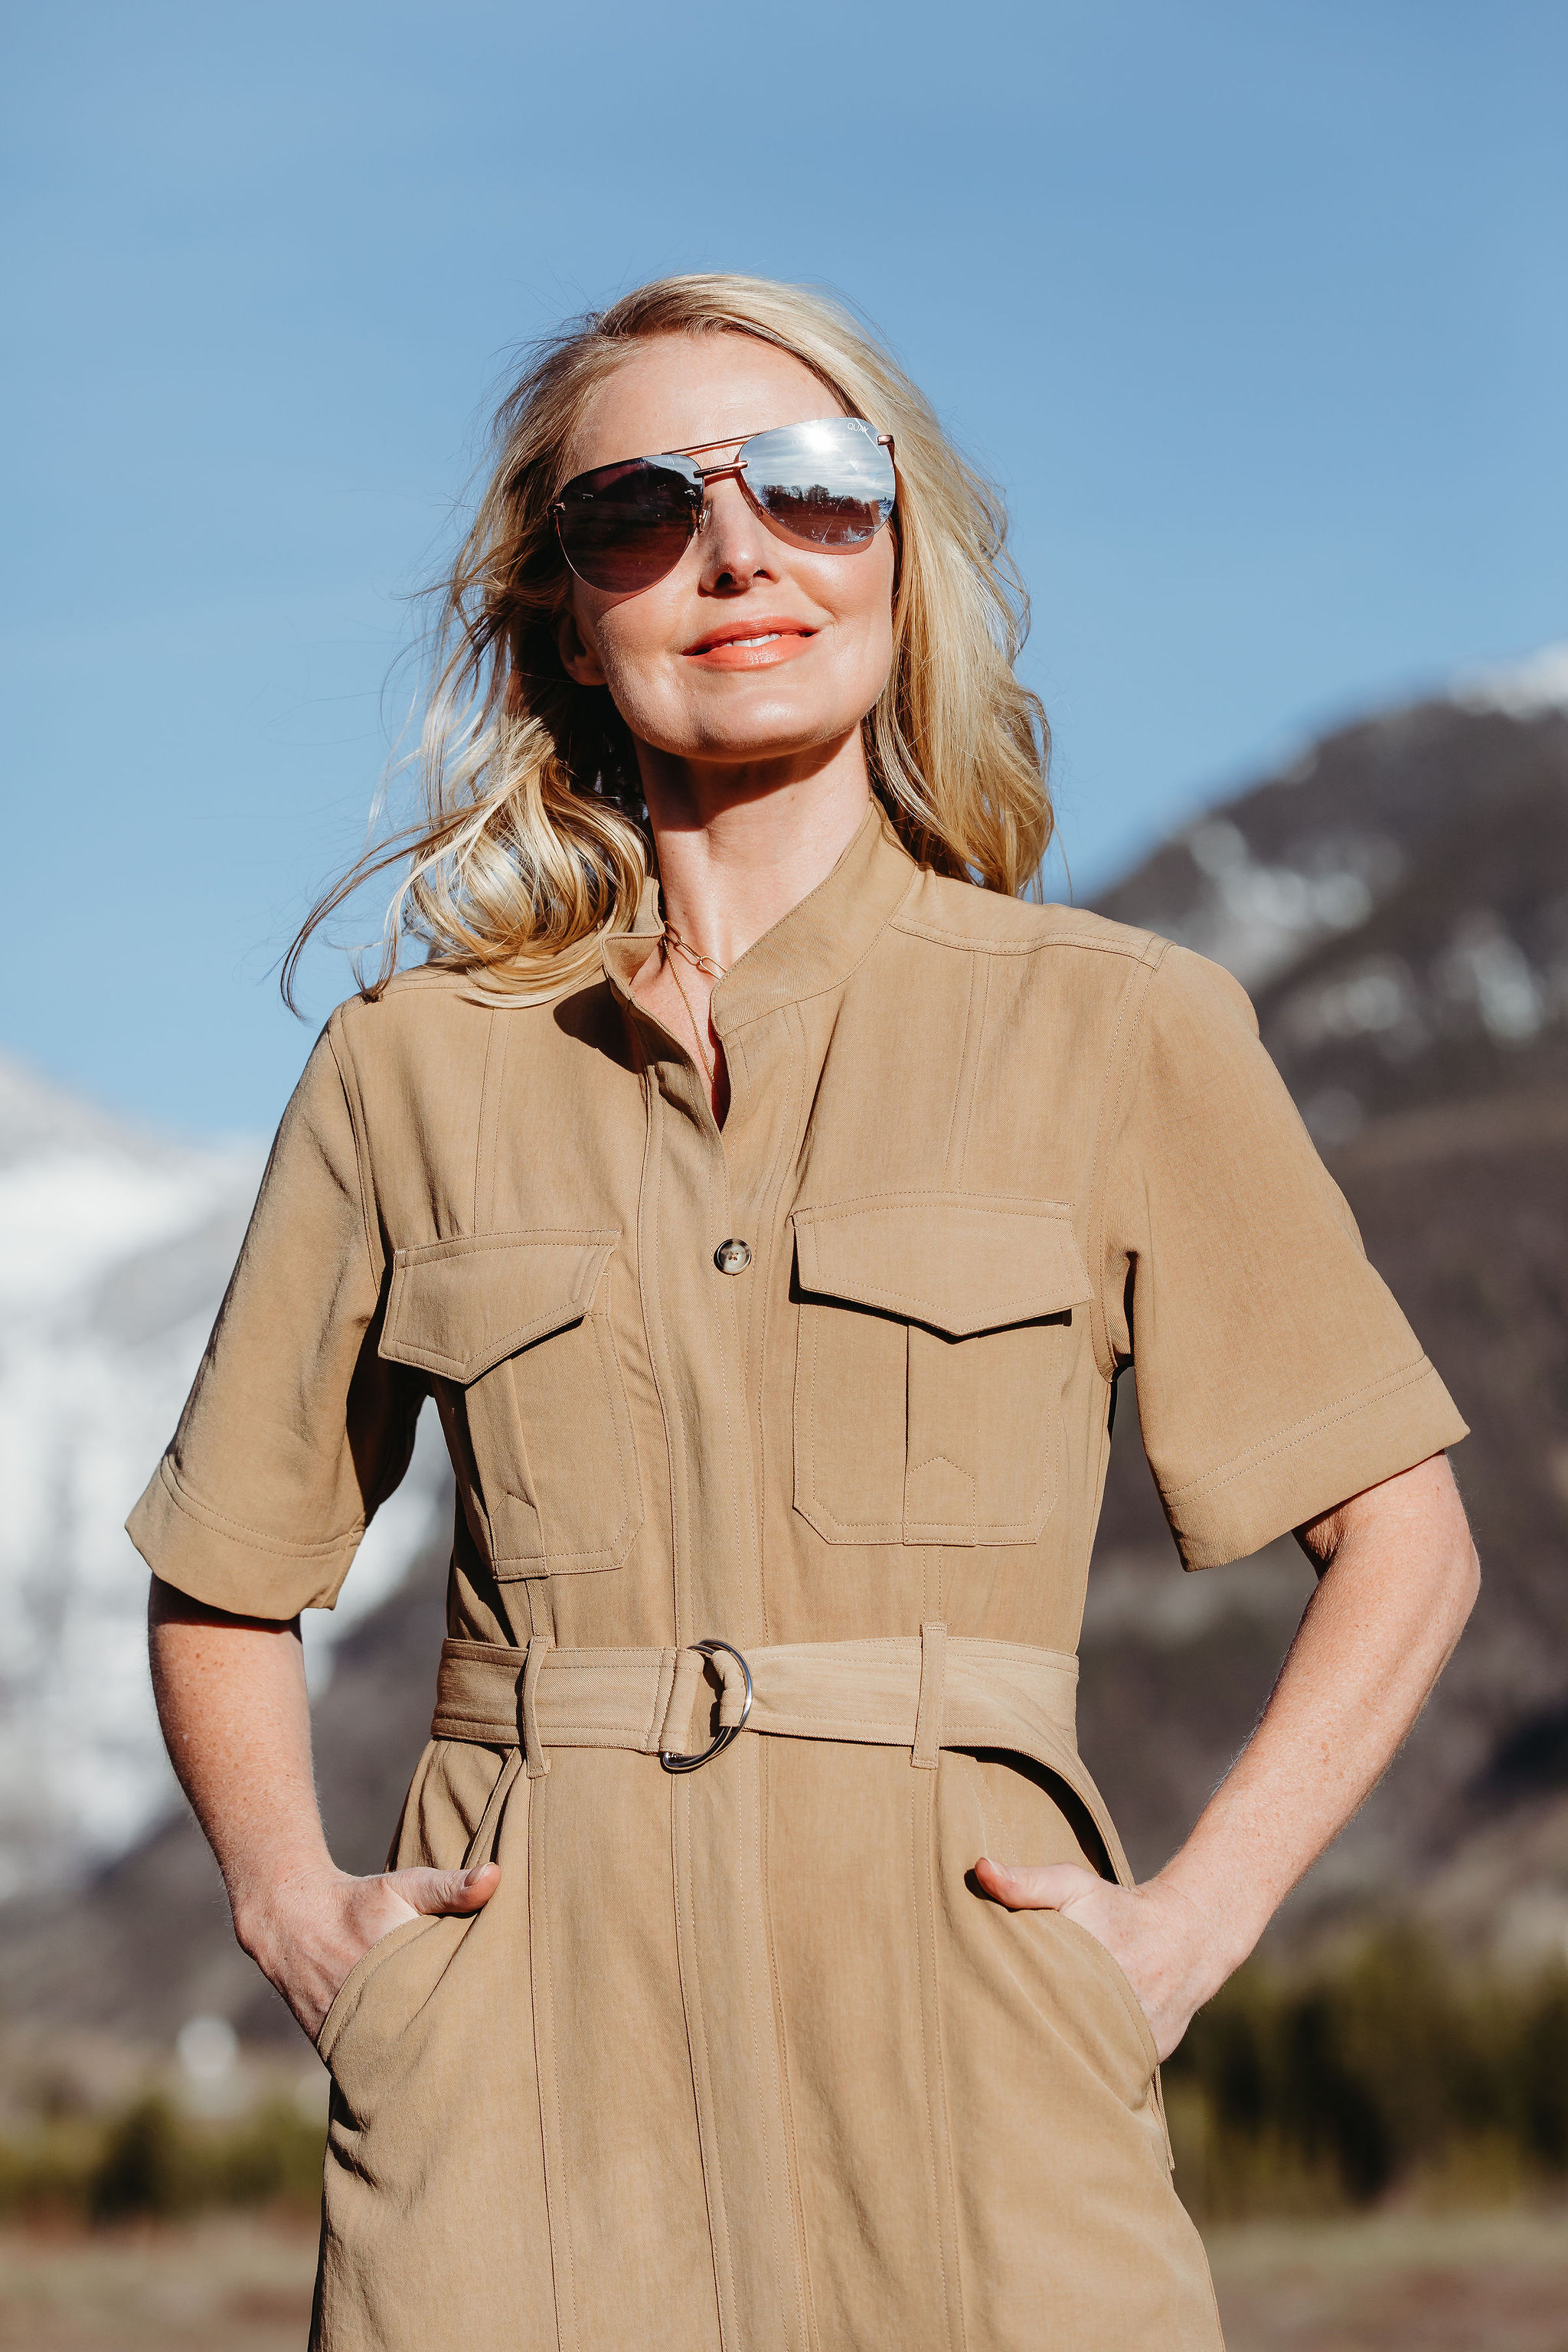 Africa Outfits, Erin Busbee of Busbee Style wearing a tan belted shirtdress by ALC with white booties in Telluride, Colorado